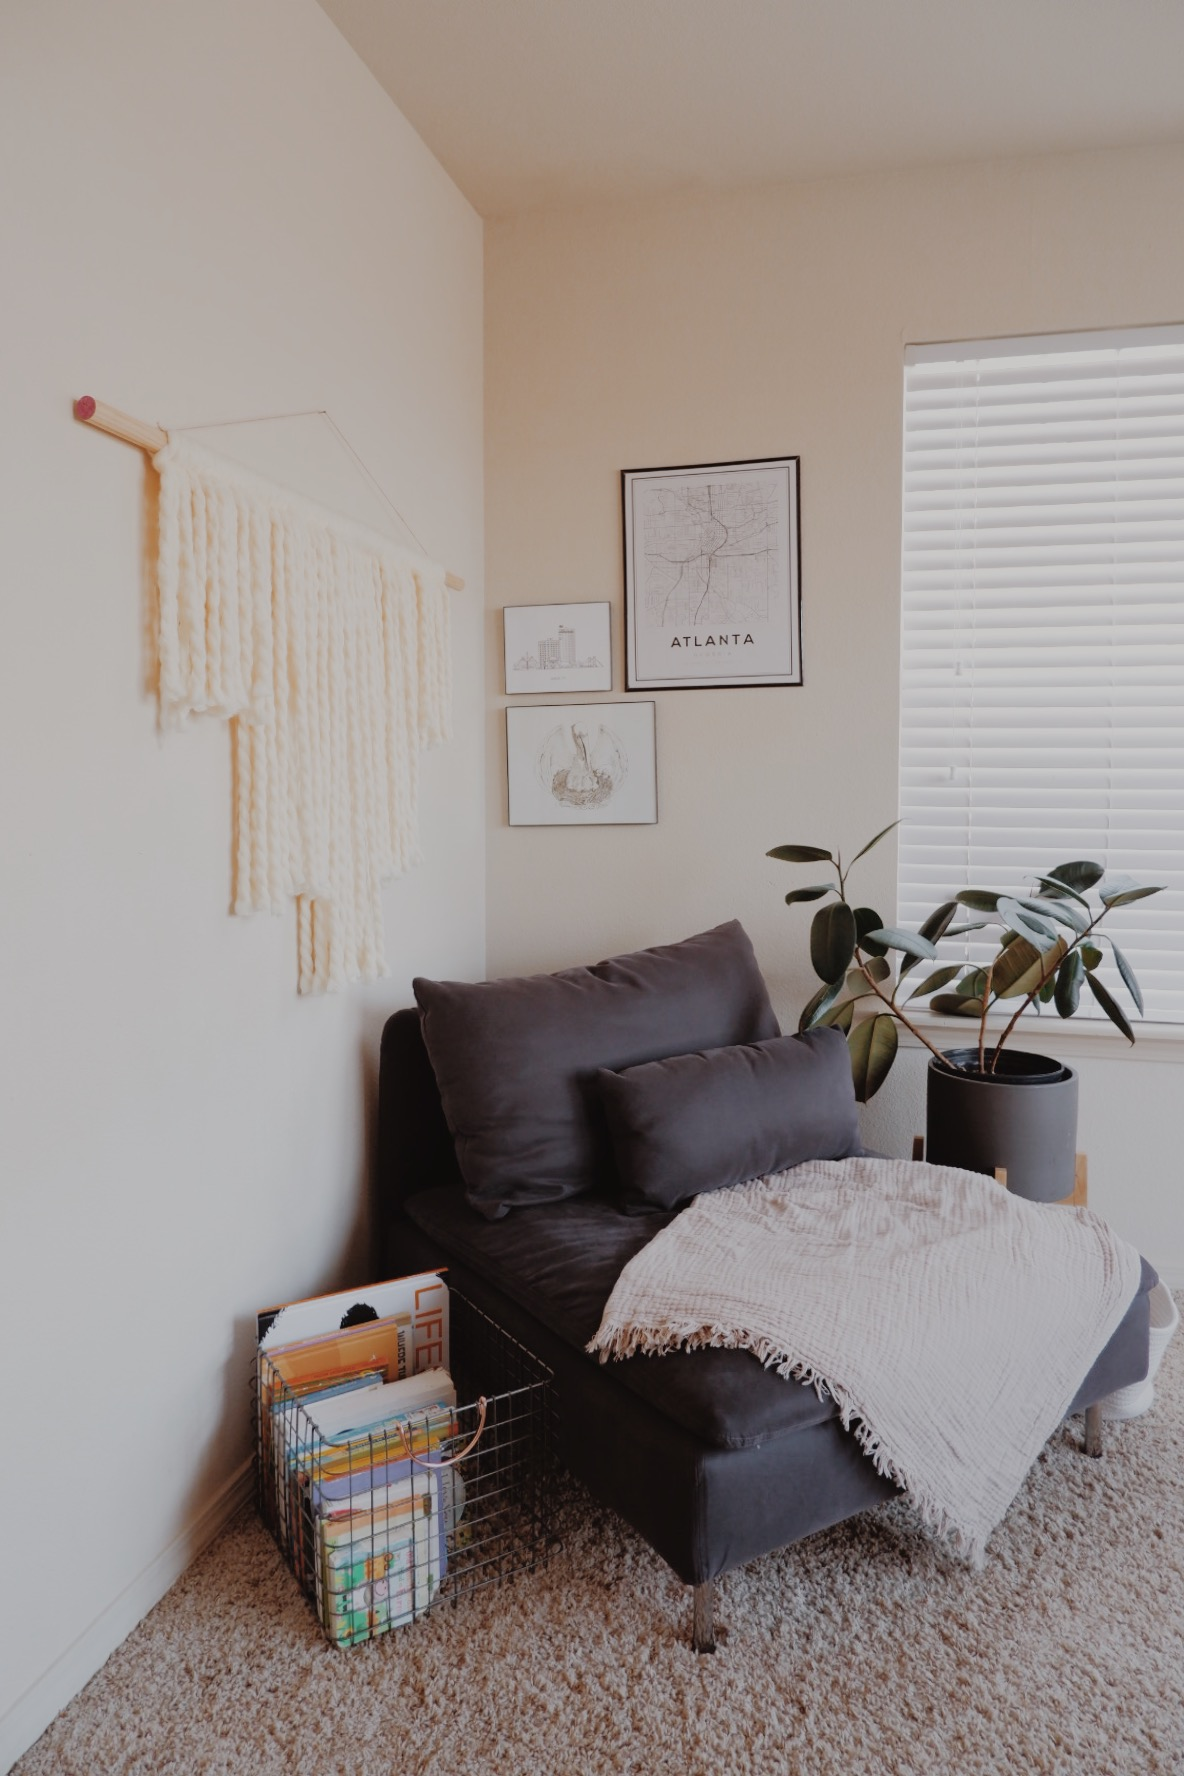 A SIMPLE WALL HANGING DIY - This Wild Home